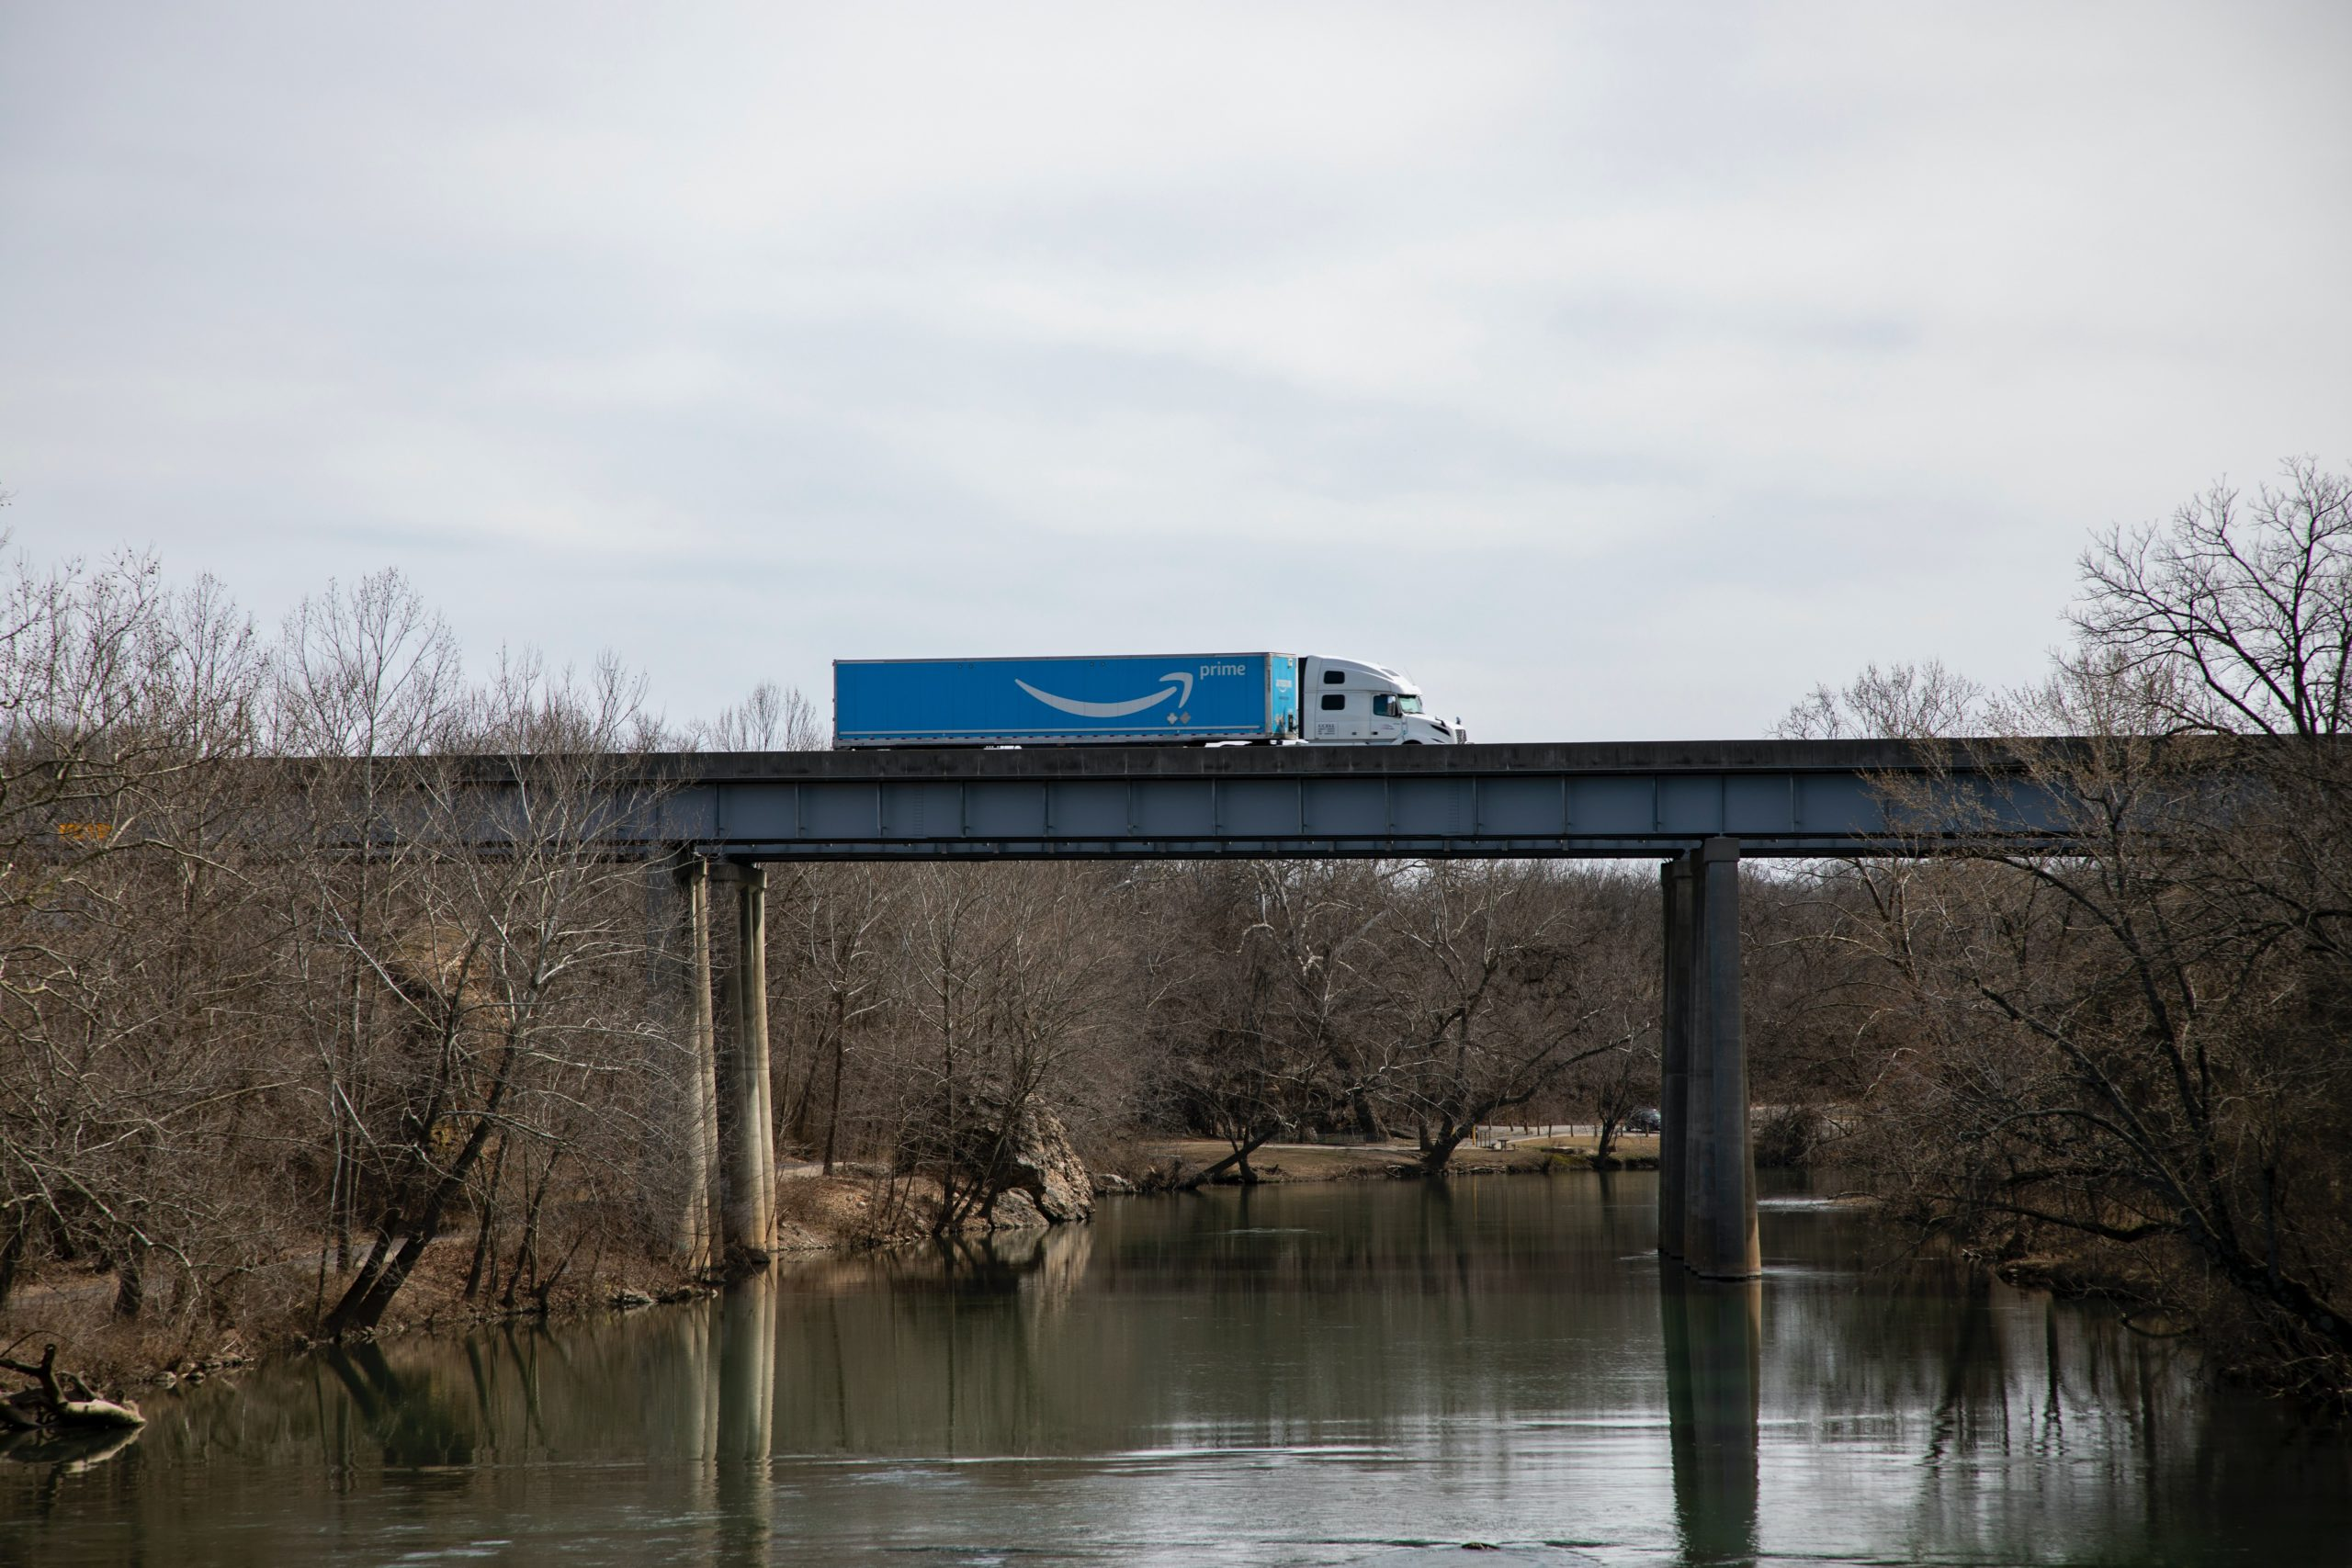 Delivery truck of Amazon passing on a bridge